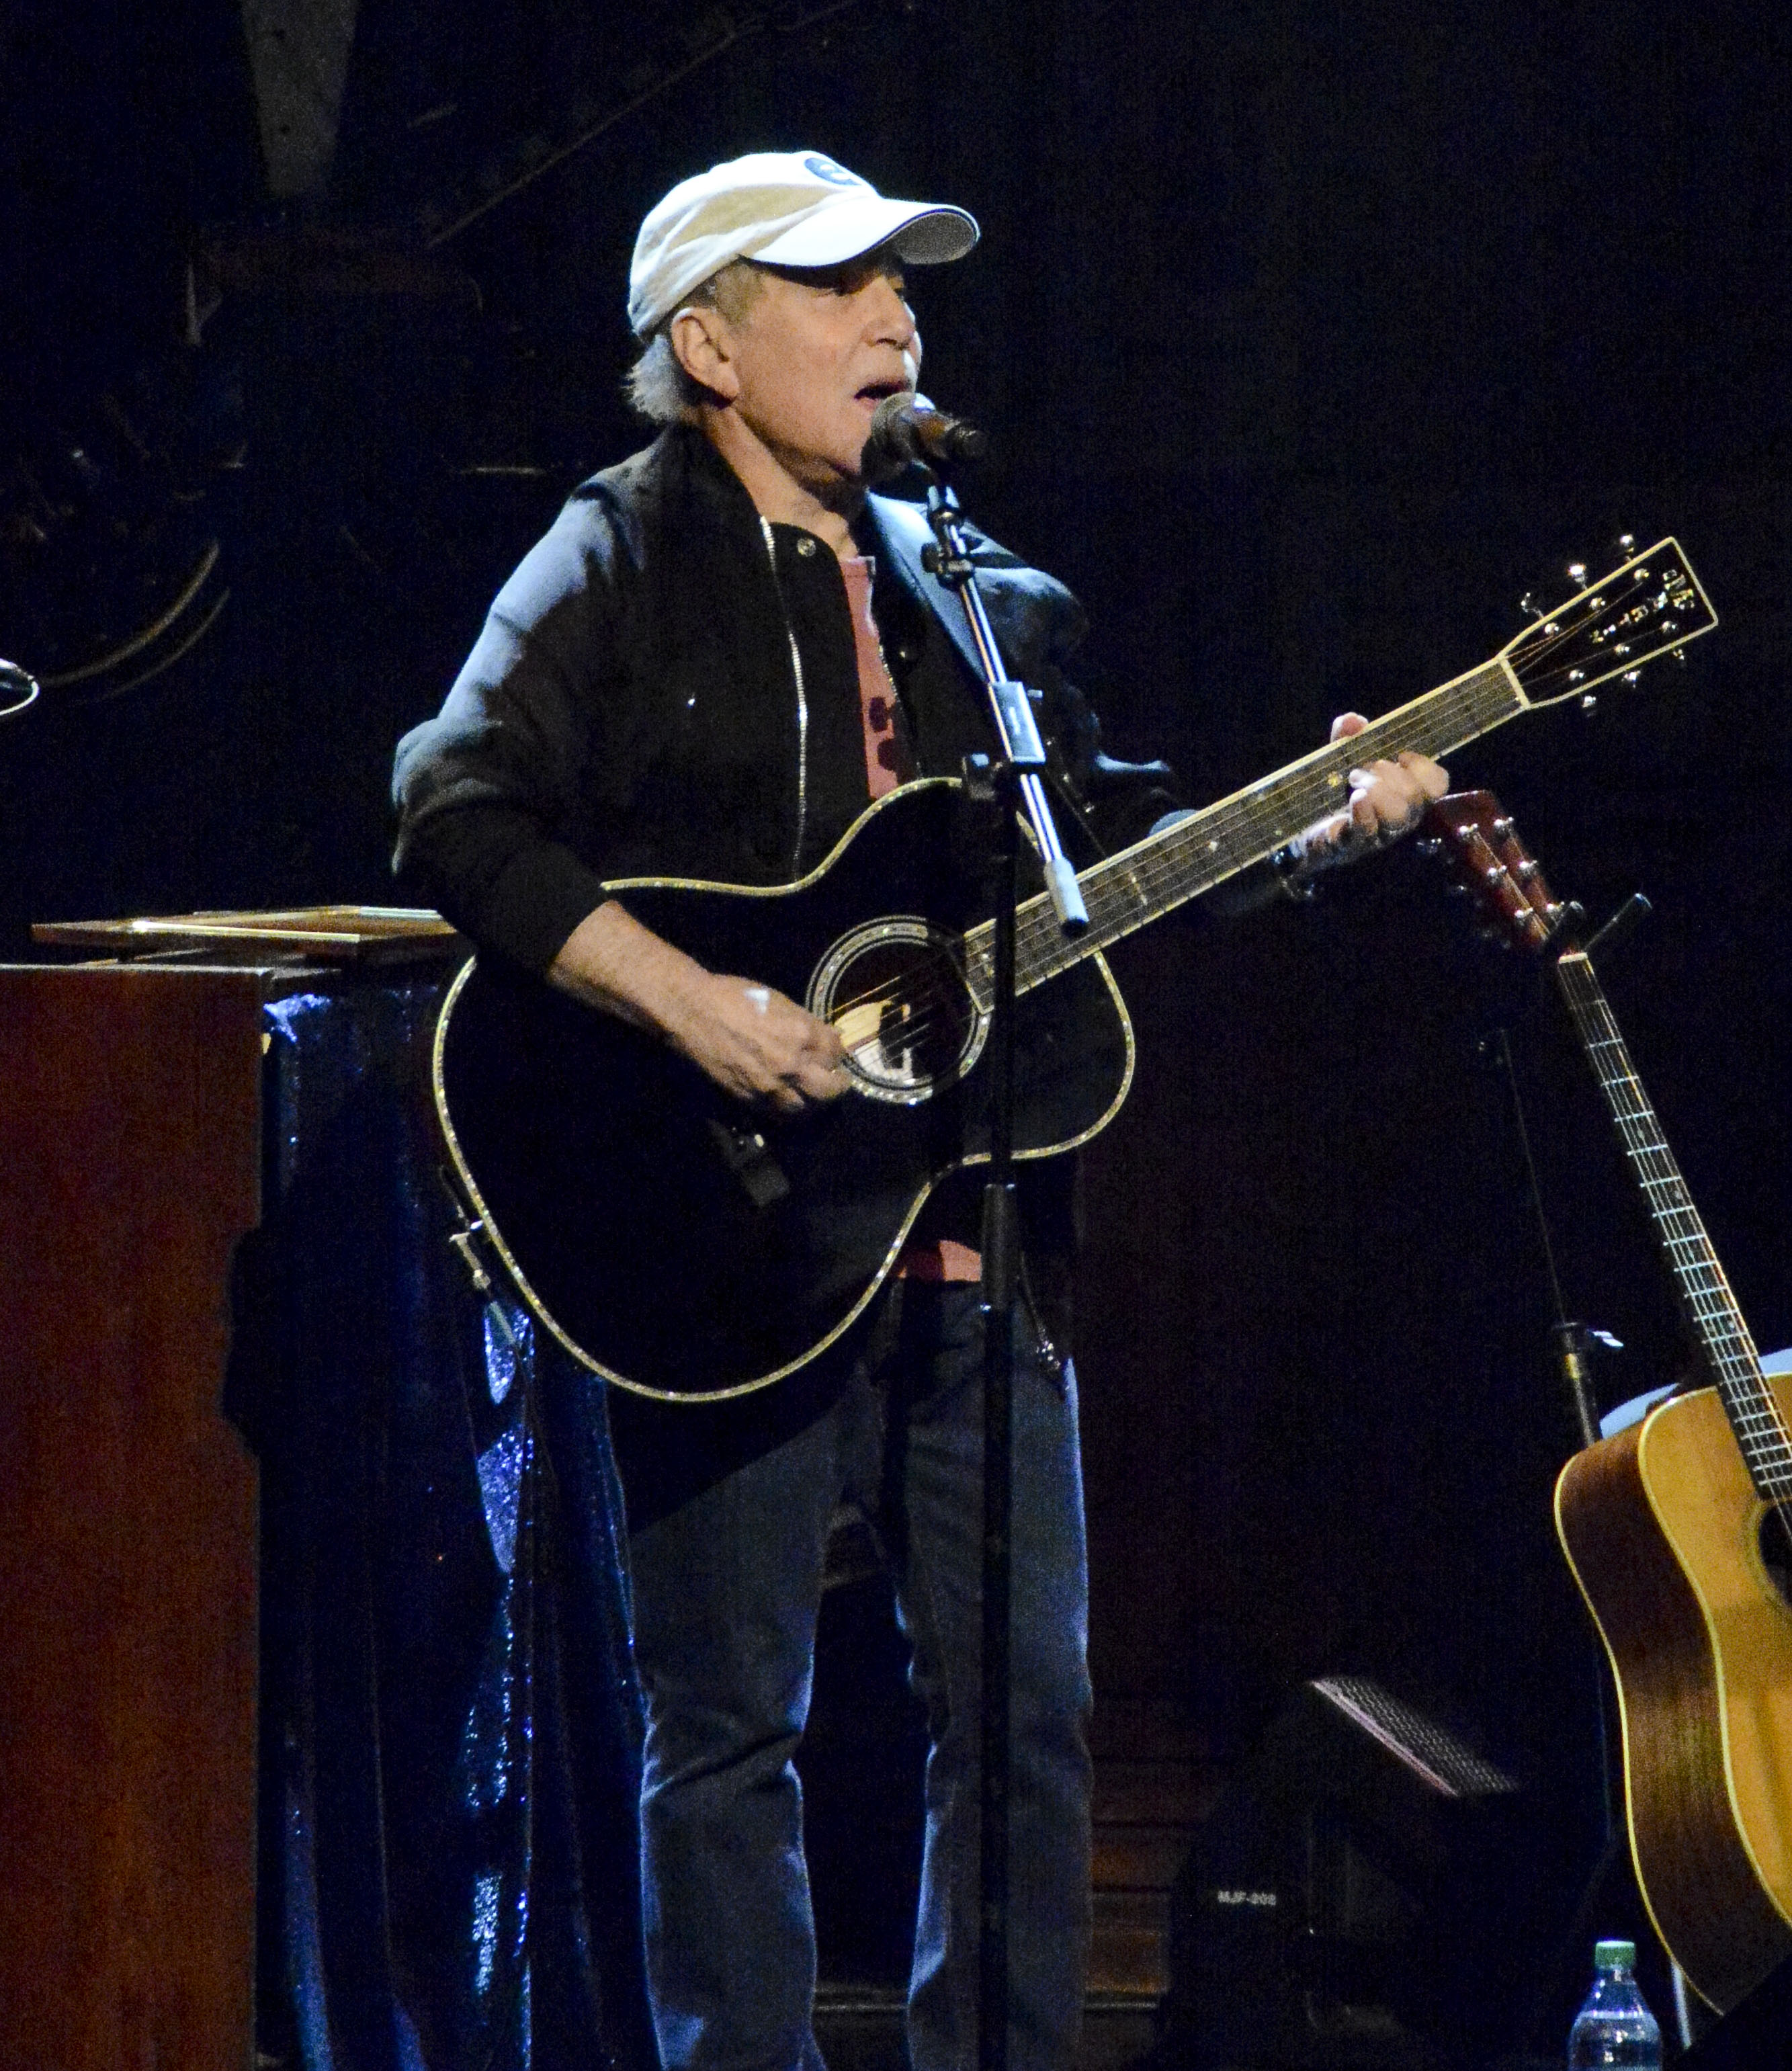 paul simon performs hits in celebration of granoff music center 39 s establishment the tufts daily. Black Bedroom Furniture Sets. Home Design Ideas